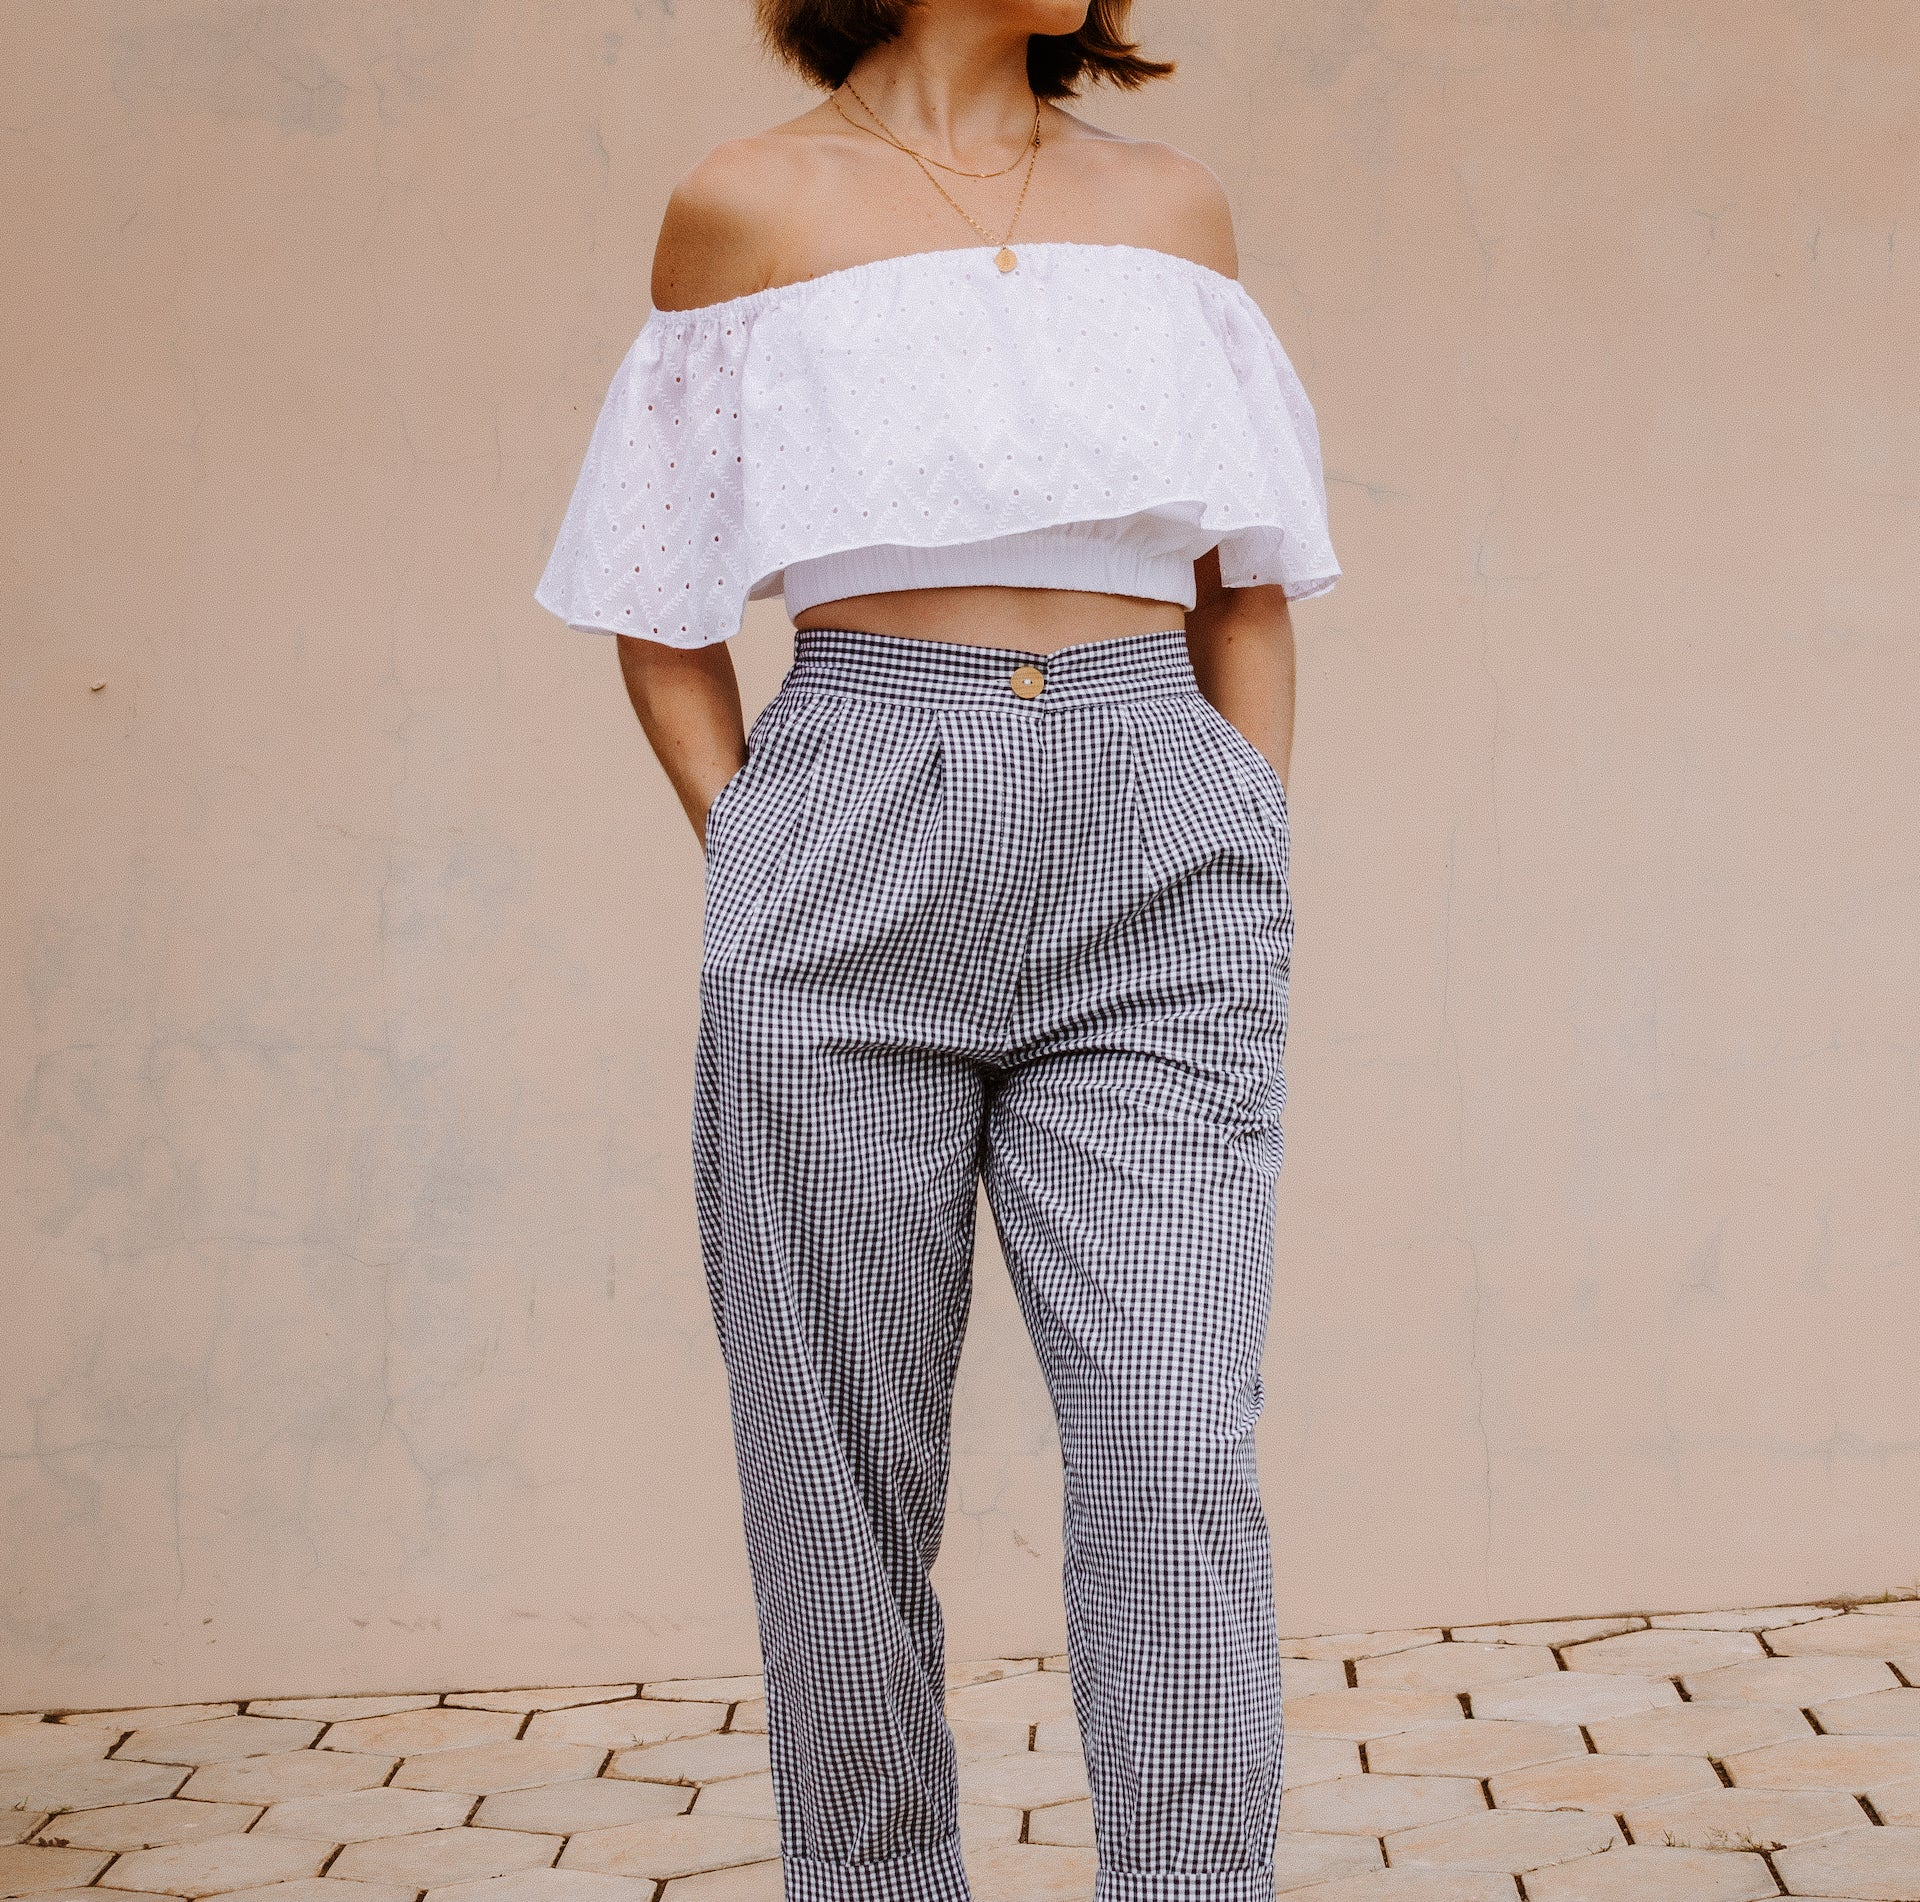 PALM off the shoulder crop top in white broderie anglaise